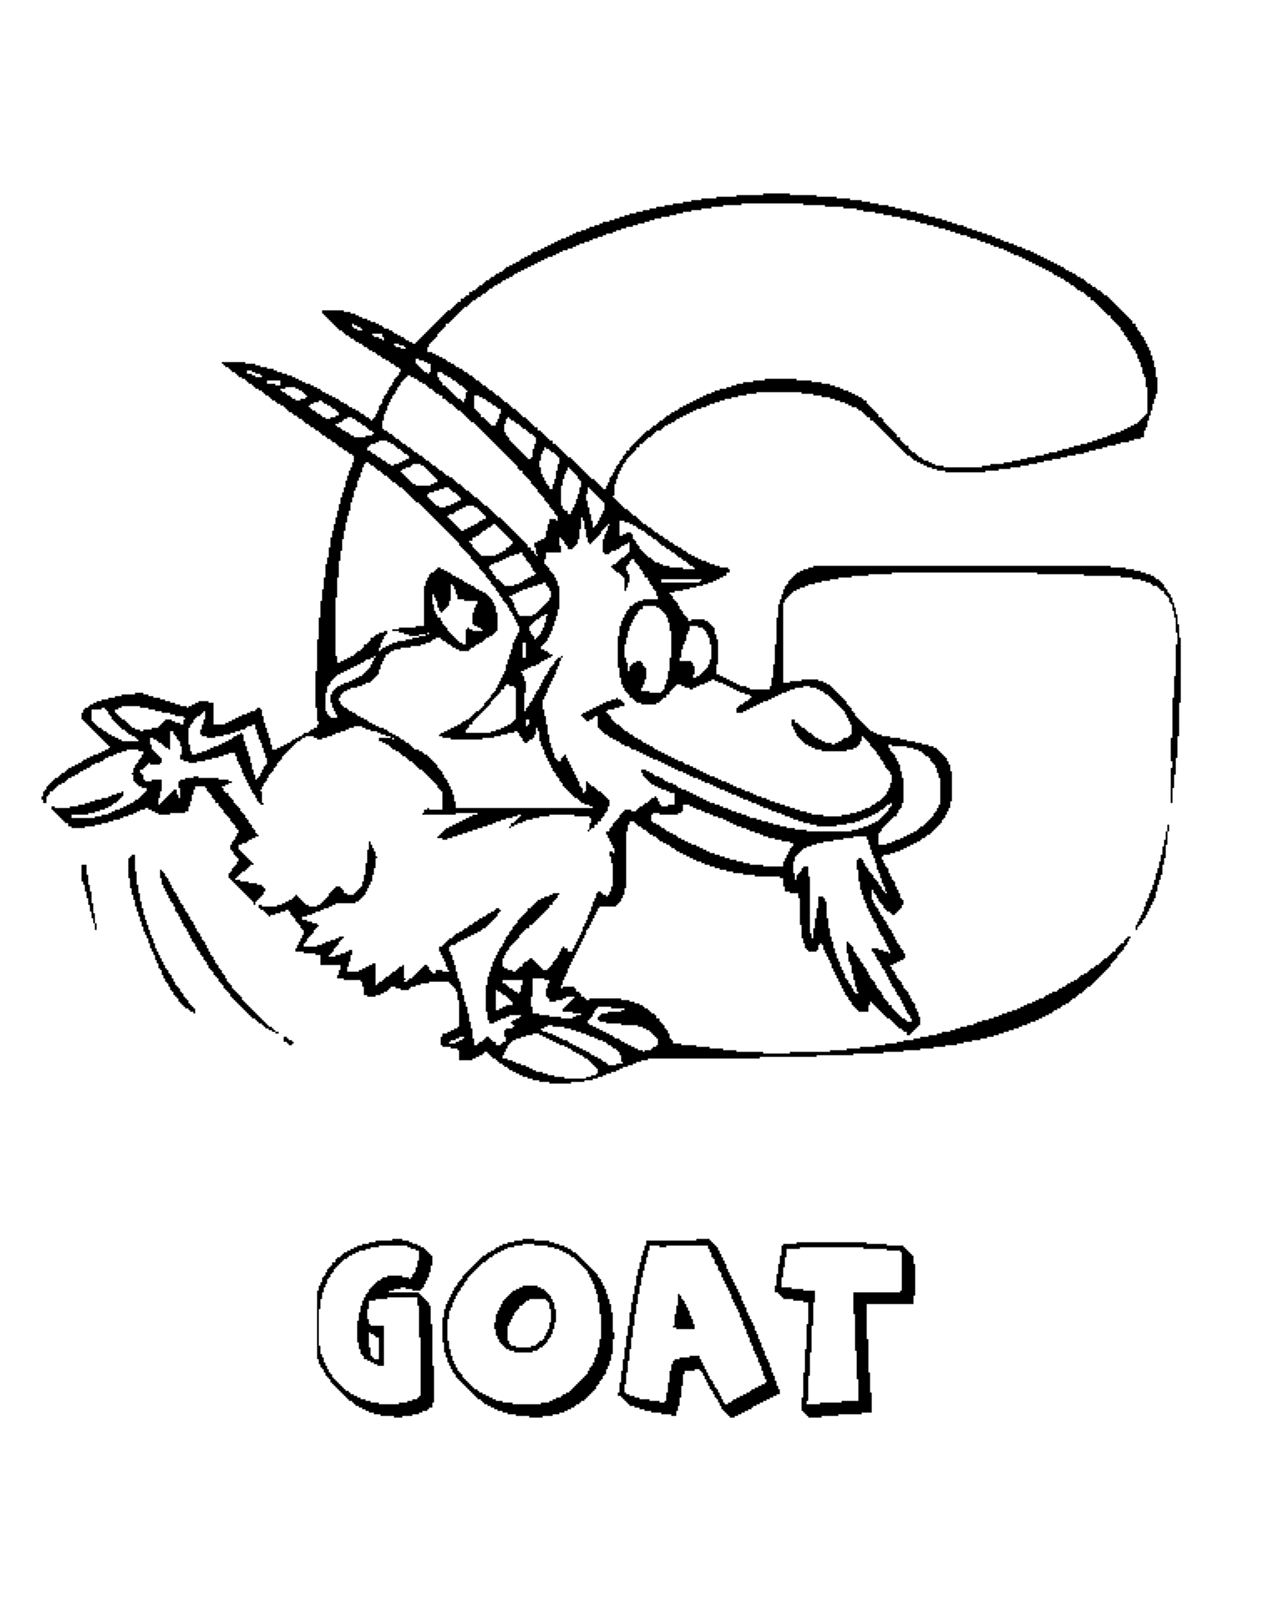 goat-coloring-page-0021-q1